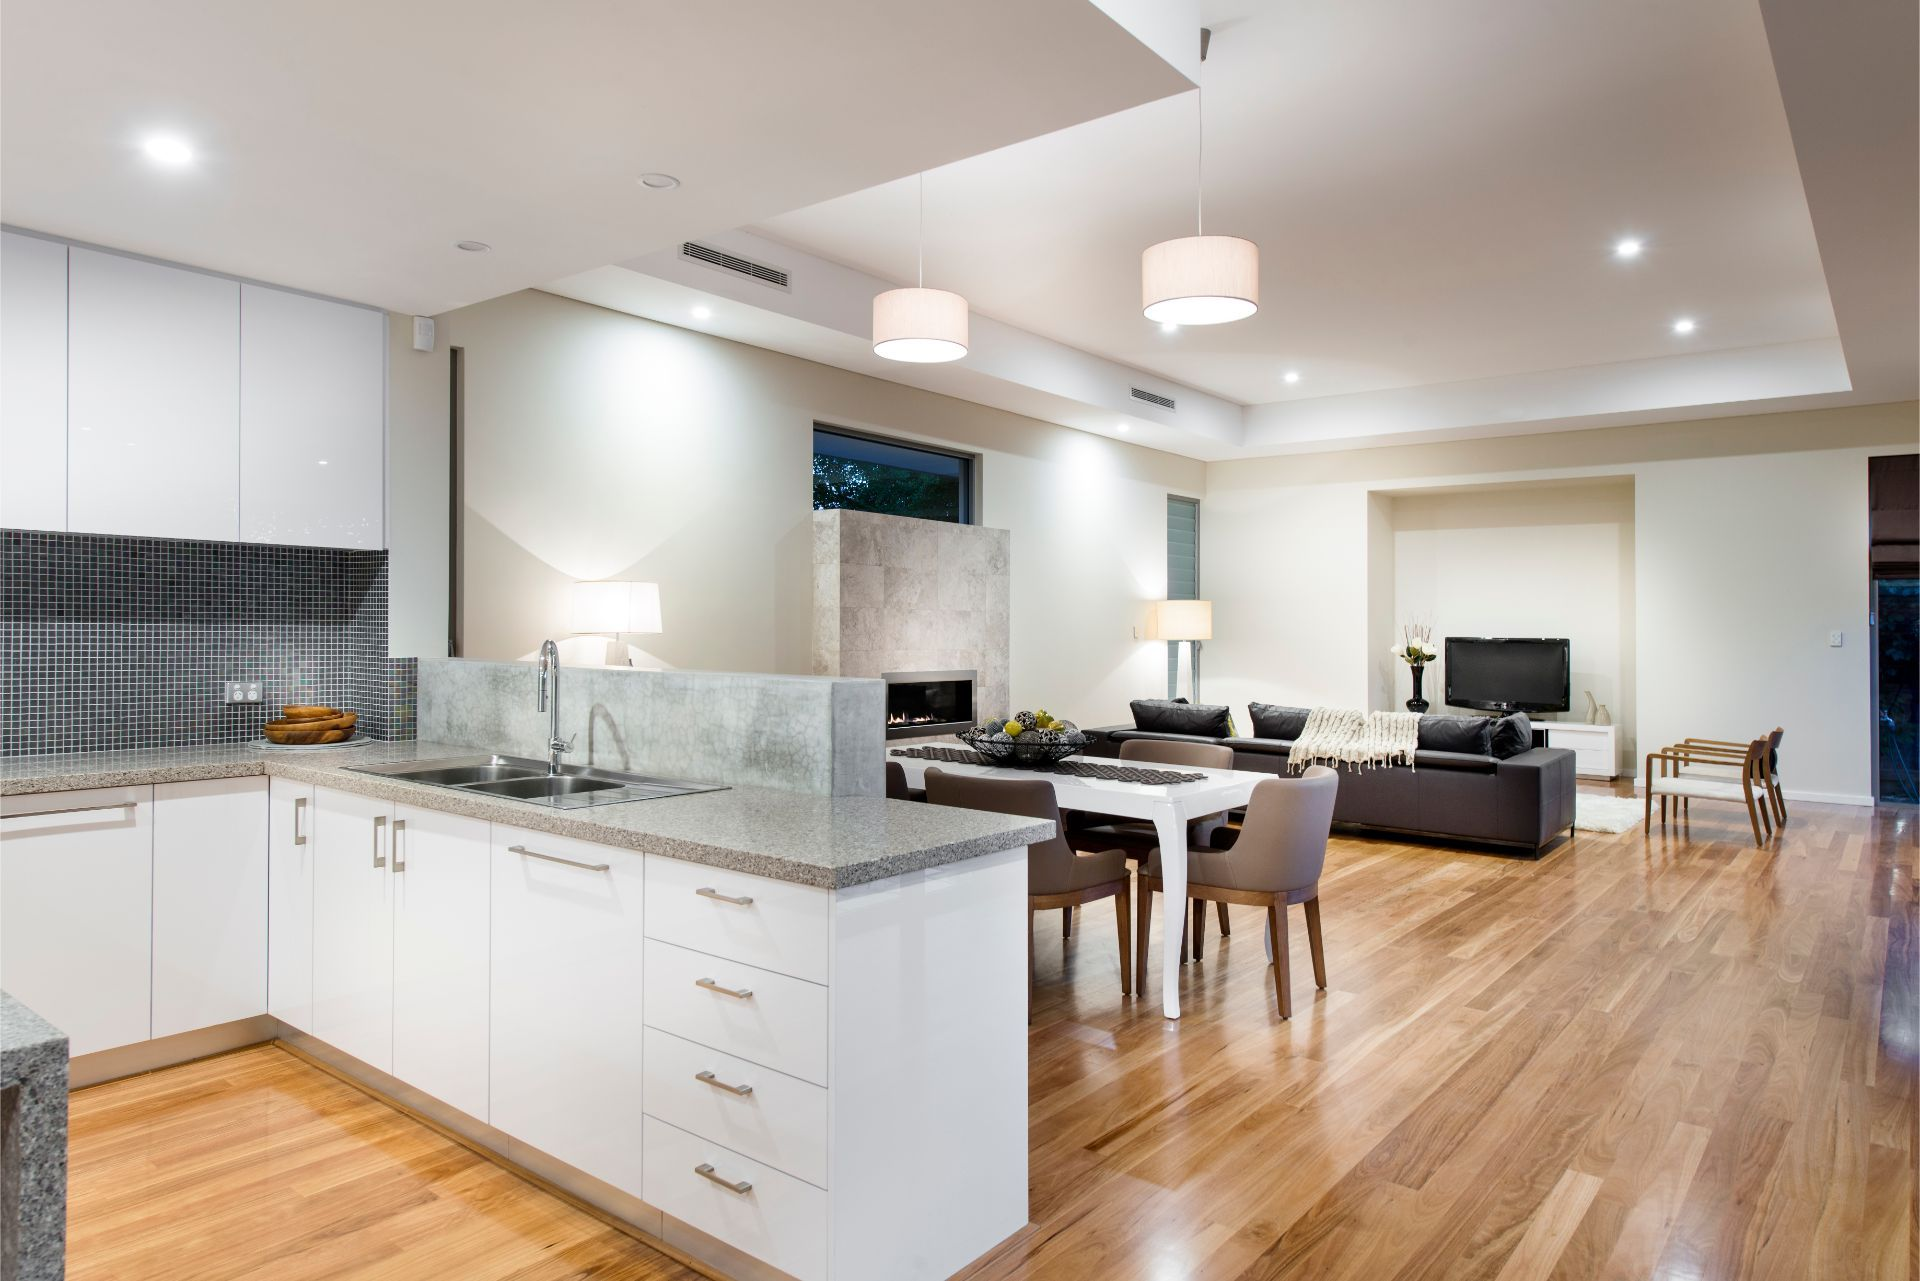 The george_architectural-homes-perth.jpg